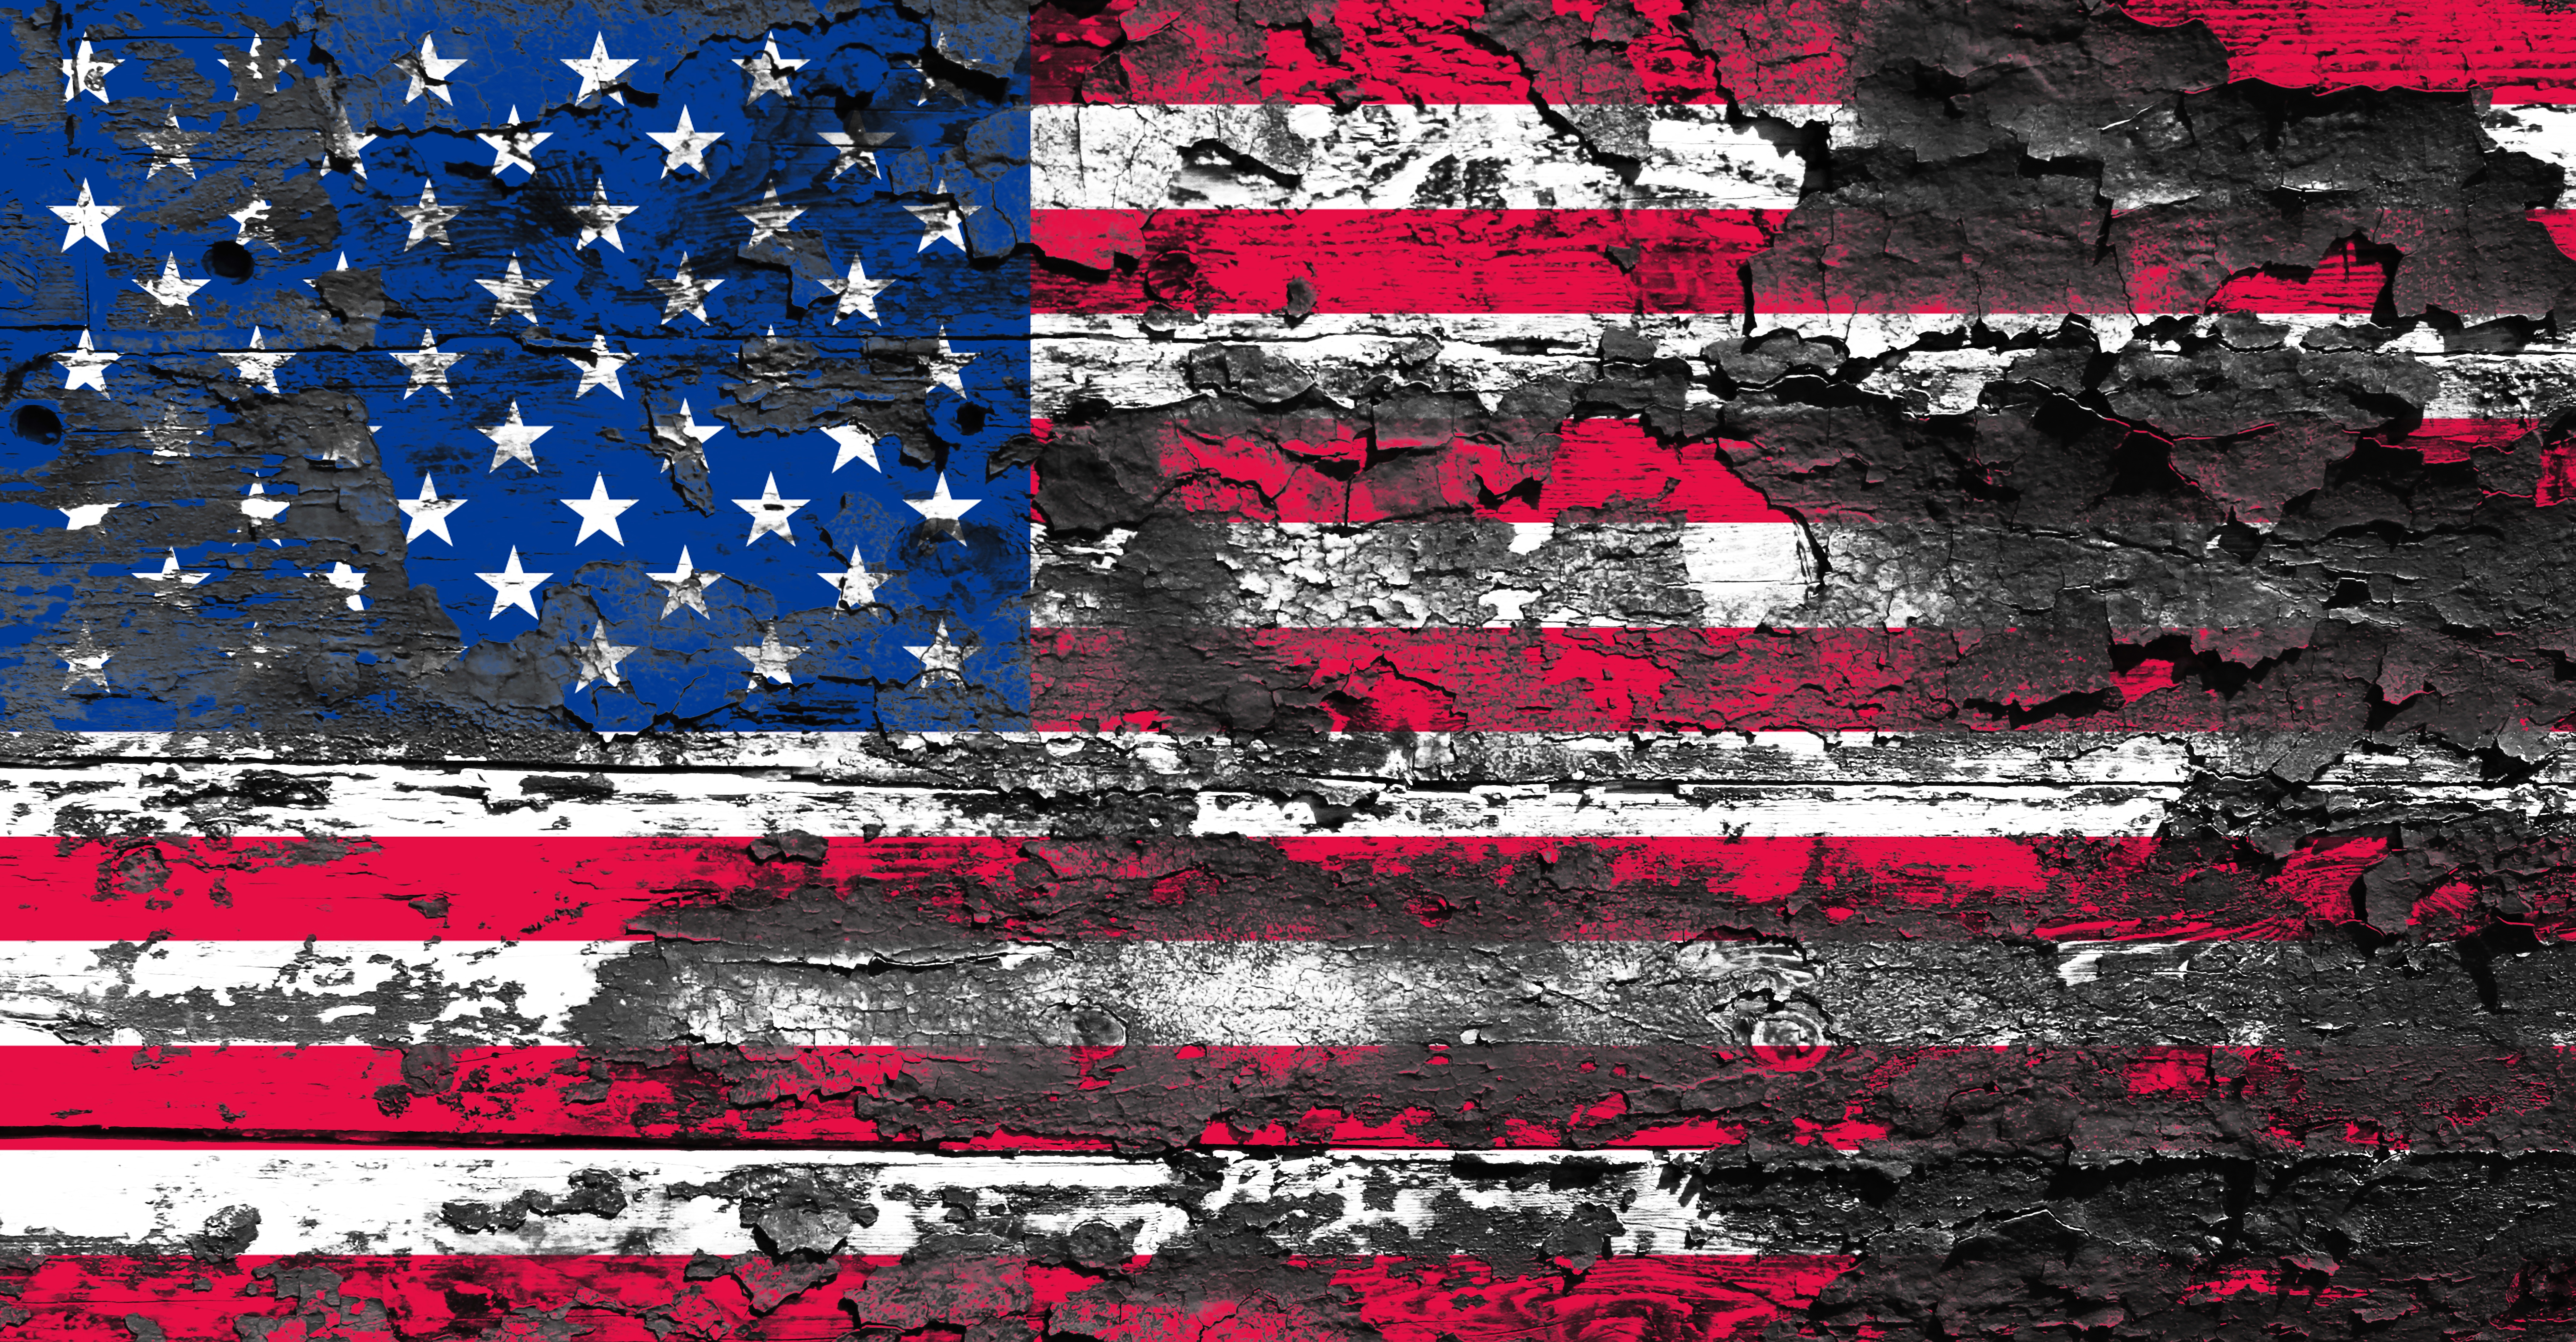 An American flag, pockmarked by peeling paint and decay.